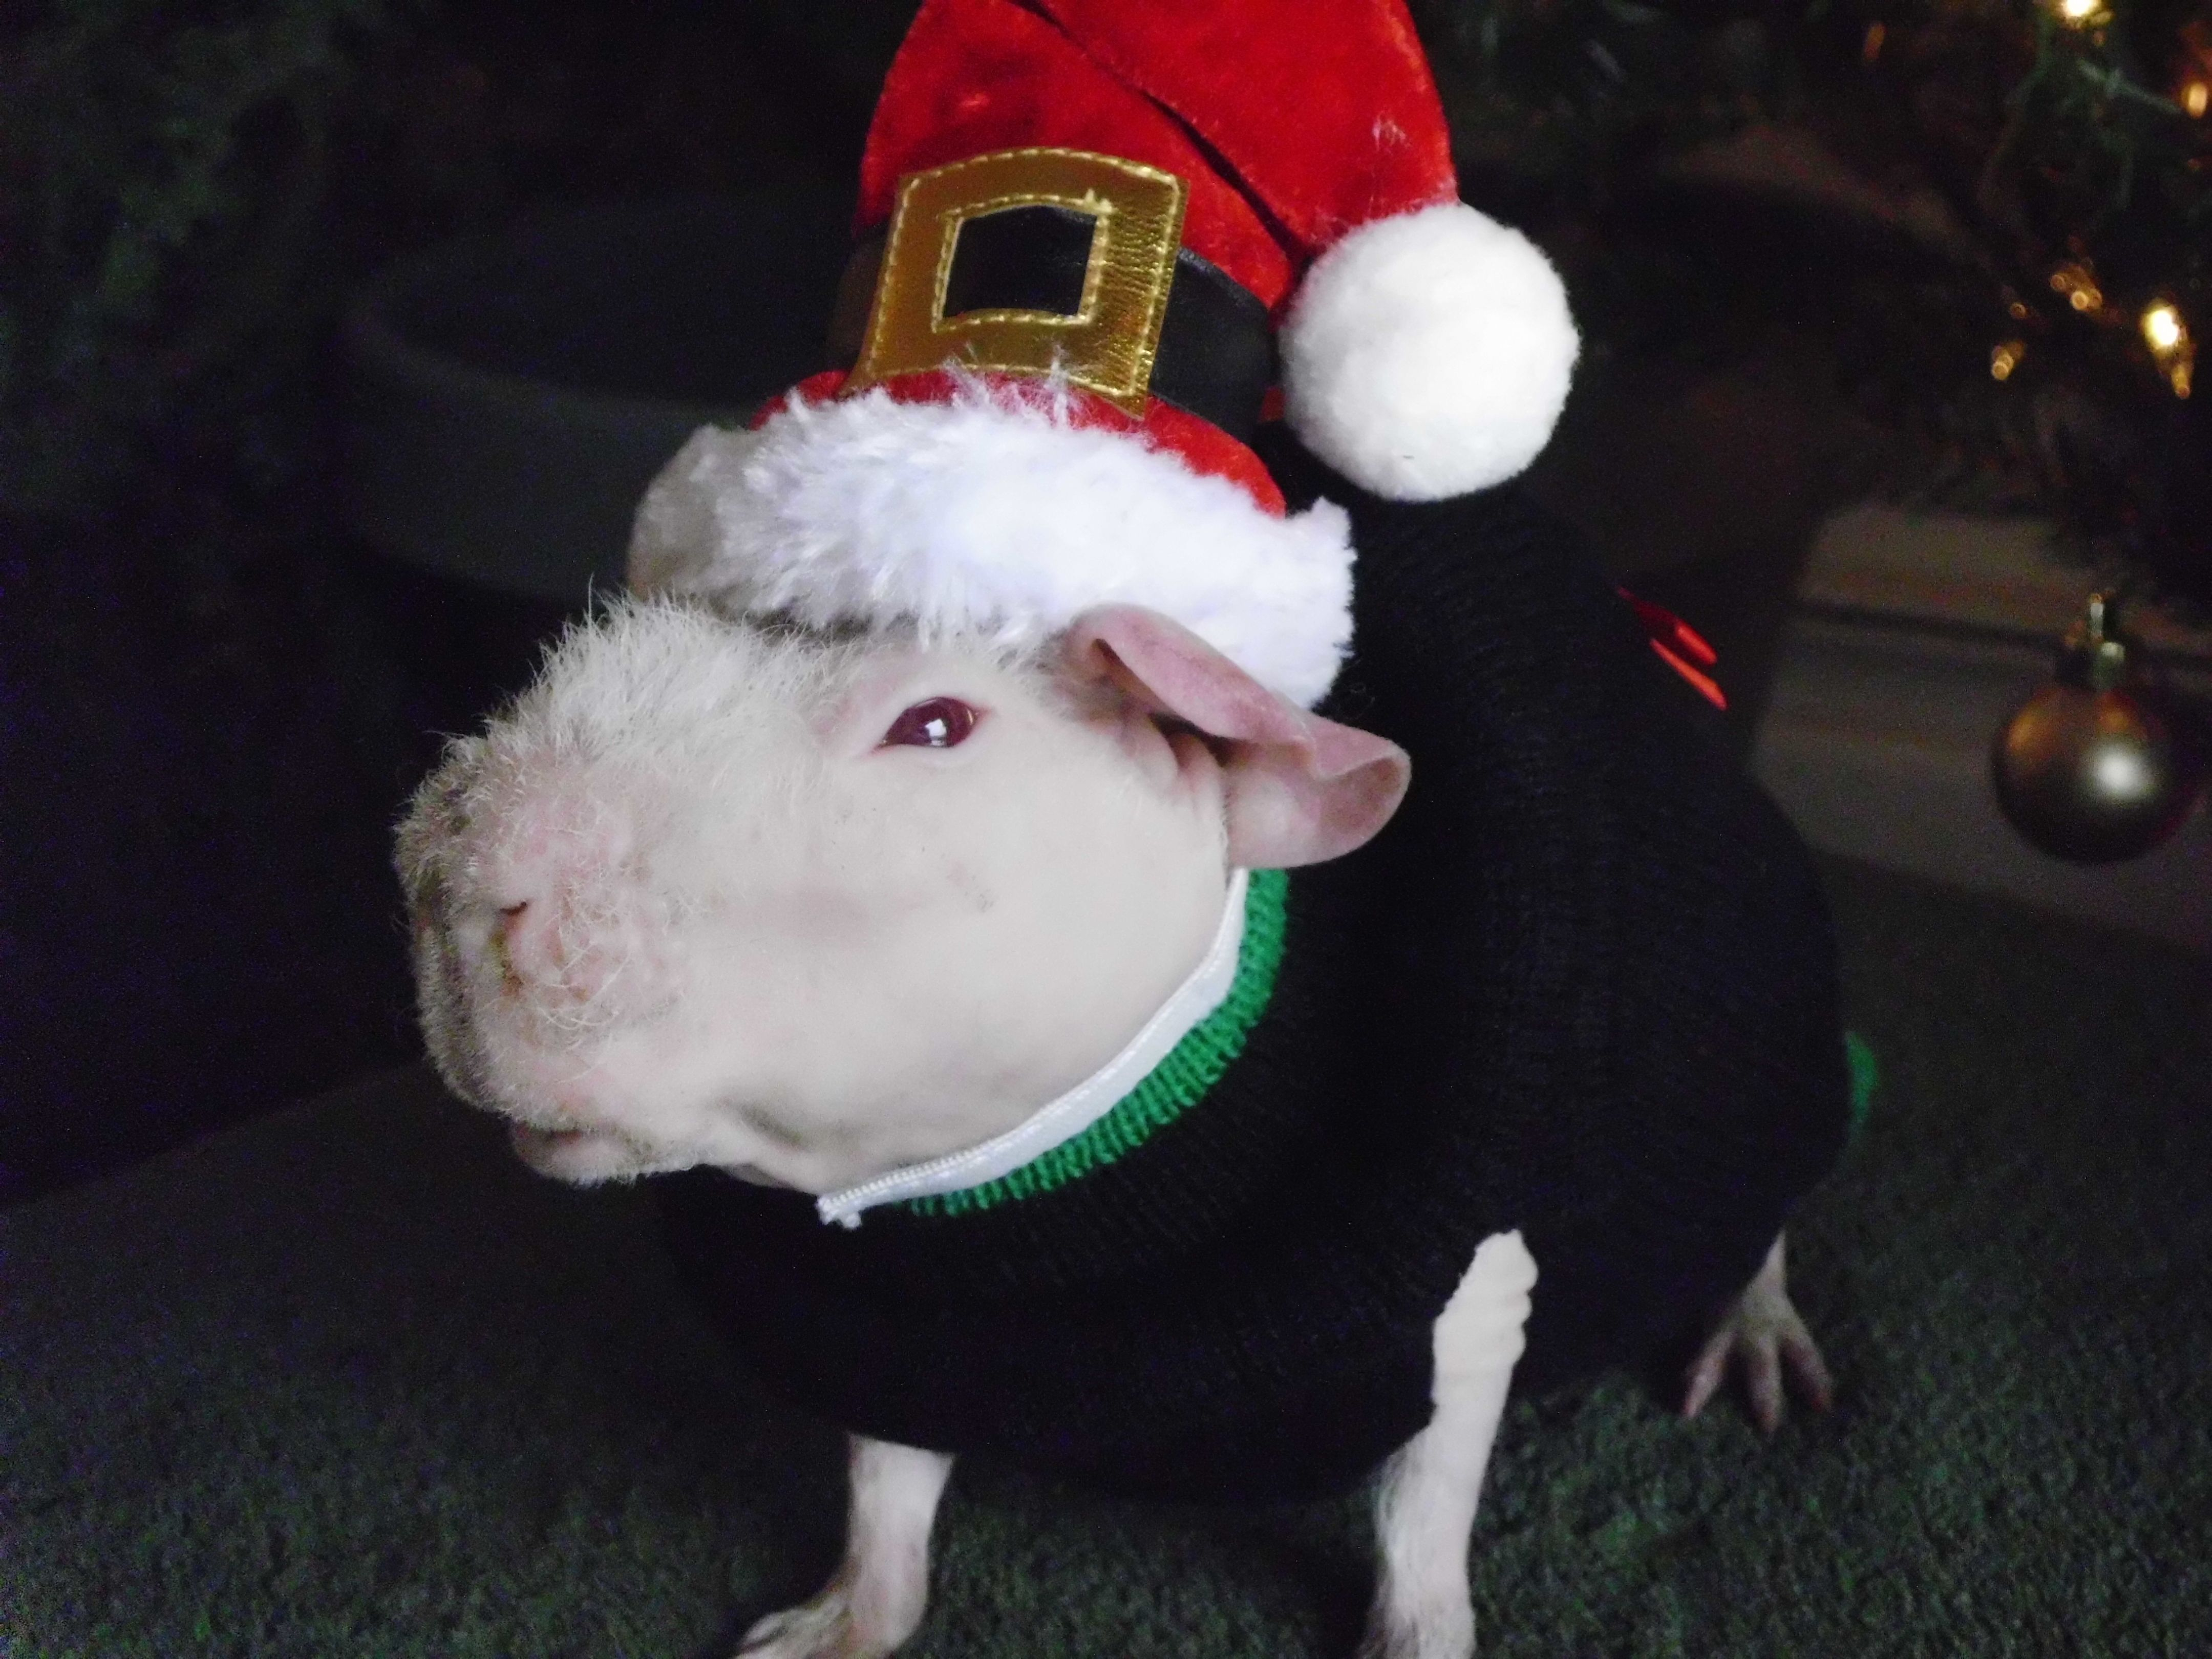 Merry Christmas from Pinky. Emergency vet, Animal